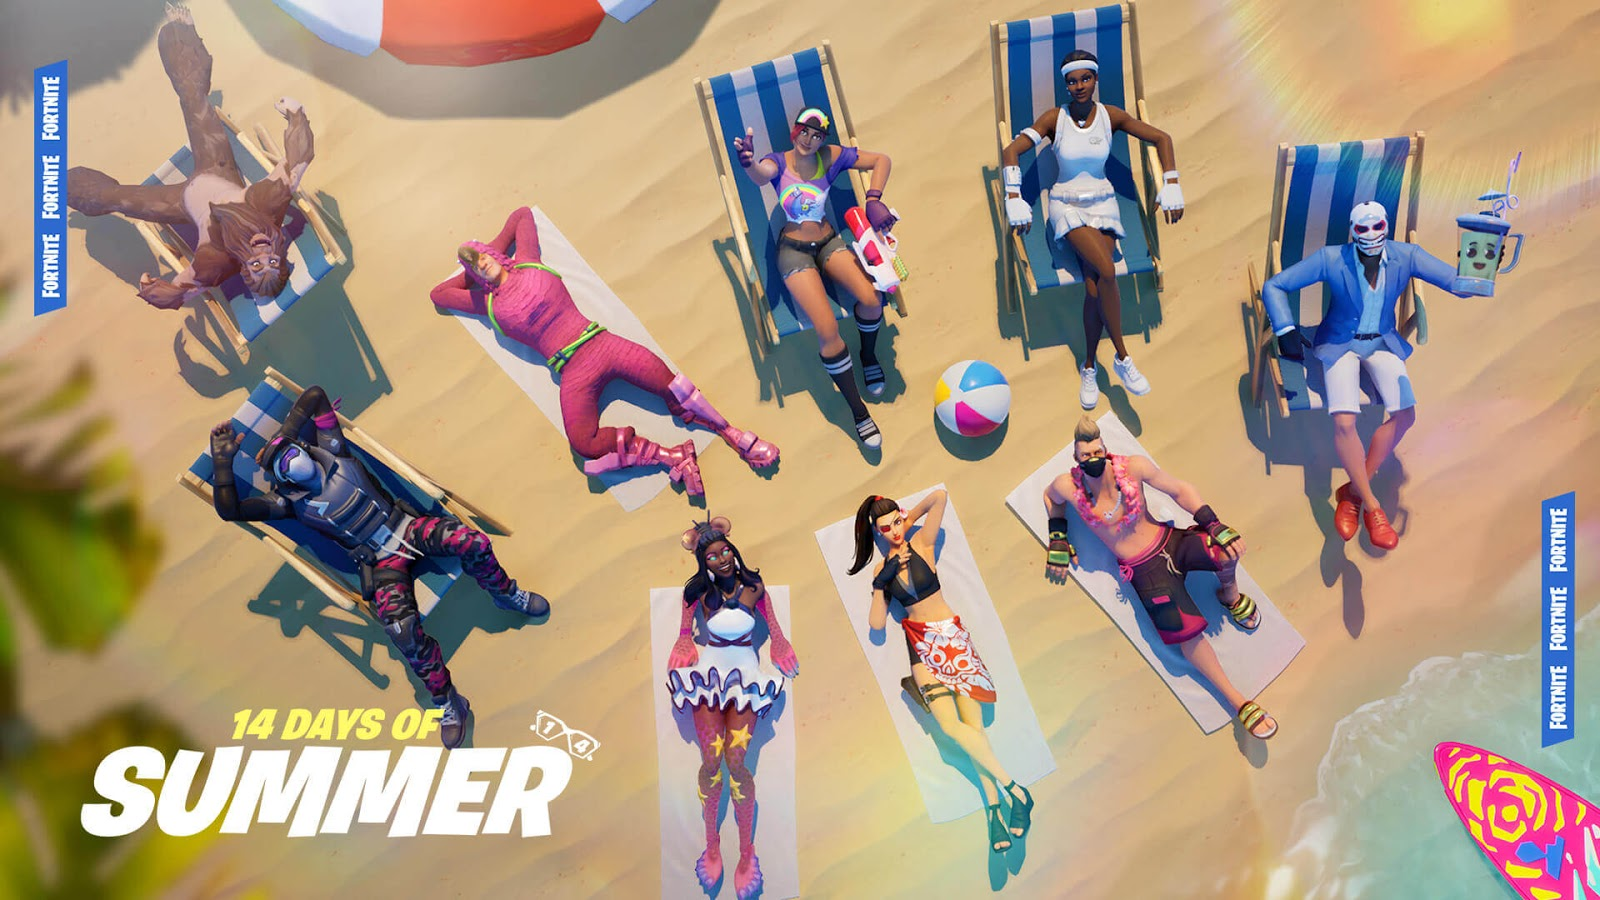 Fortnite: The Fun Continues With The Second Week OF 14 Days of Summer!